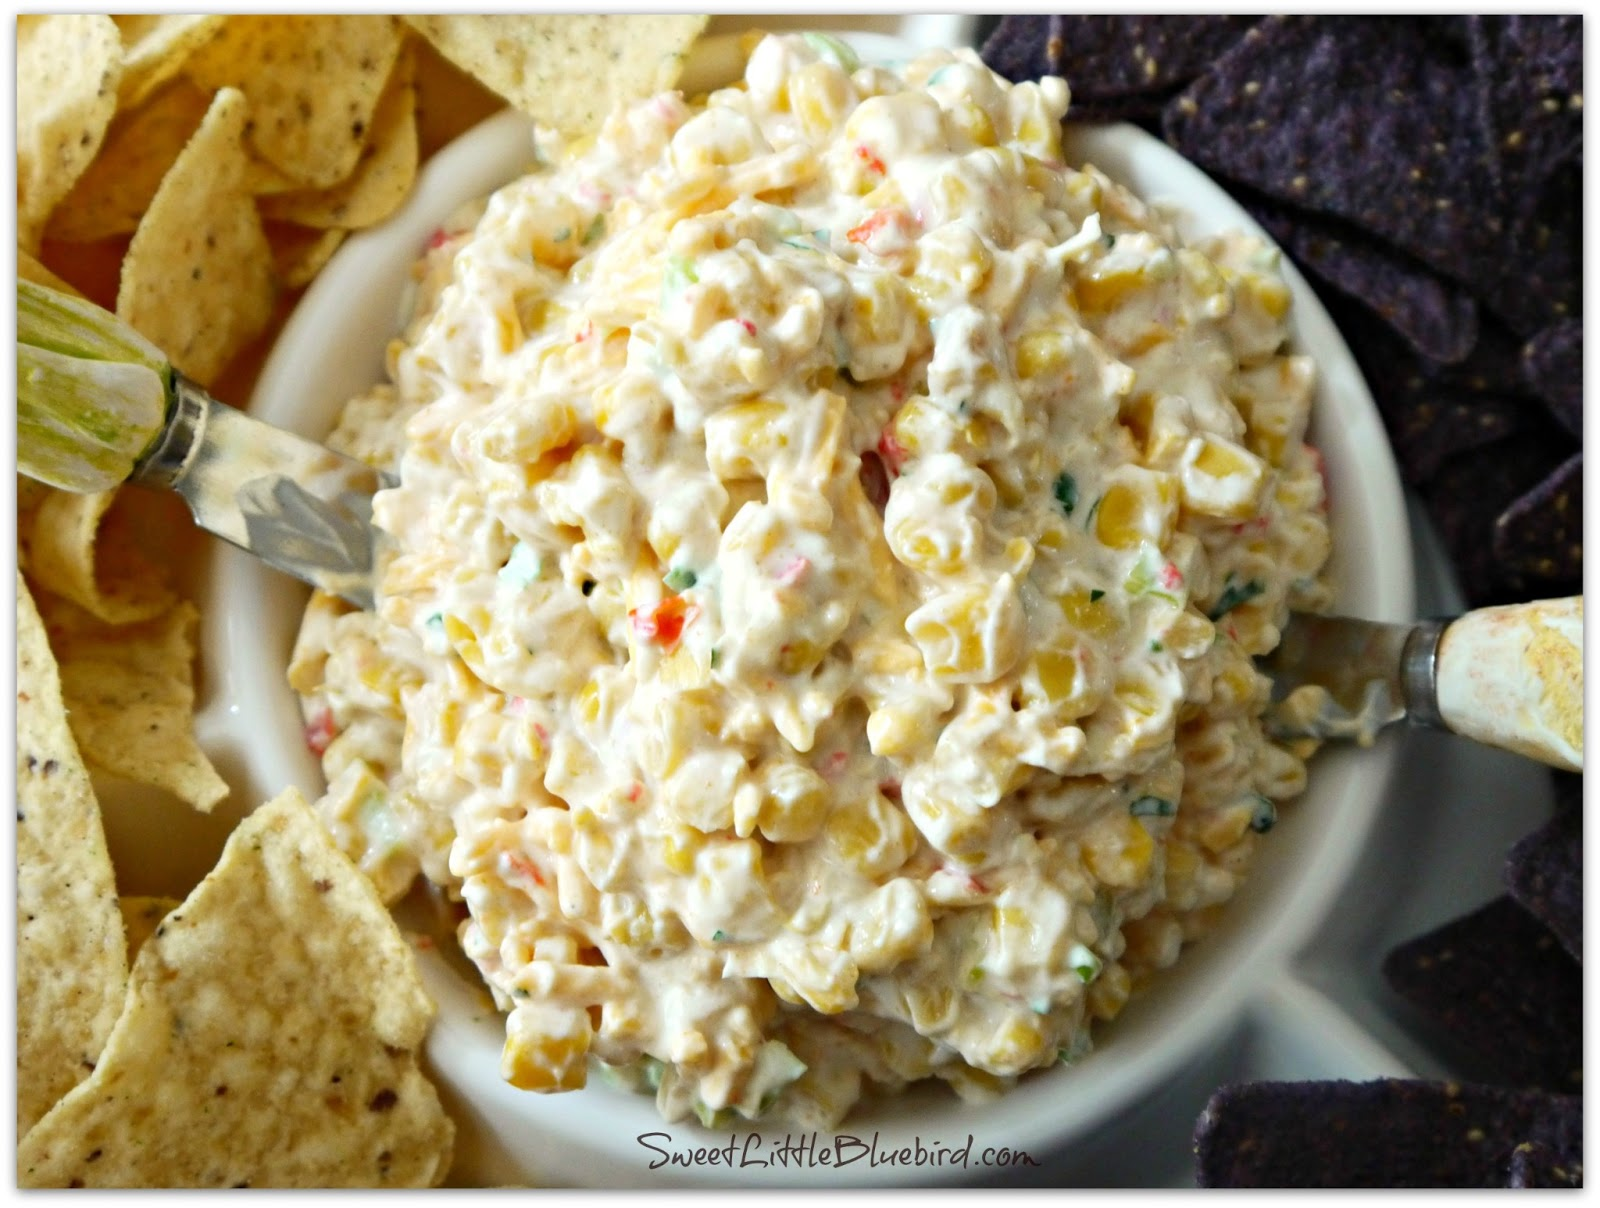 Fiesta Corn Salsa, is an appetizer that's always a hit and gets swarmed by guests. Be prepared to re-fill the bowl, this dip gets gobbled up fast!